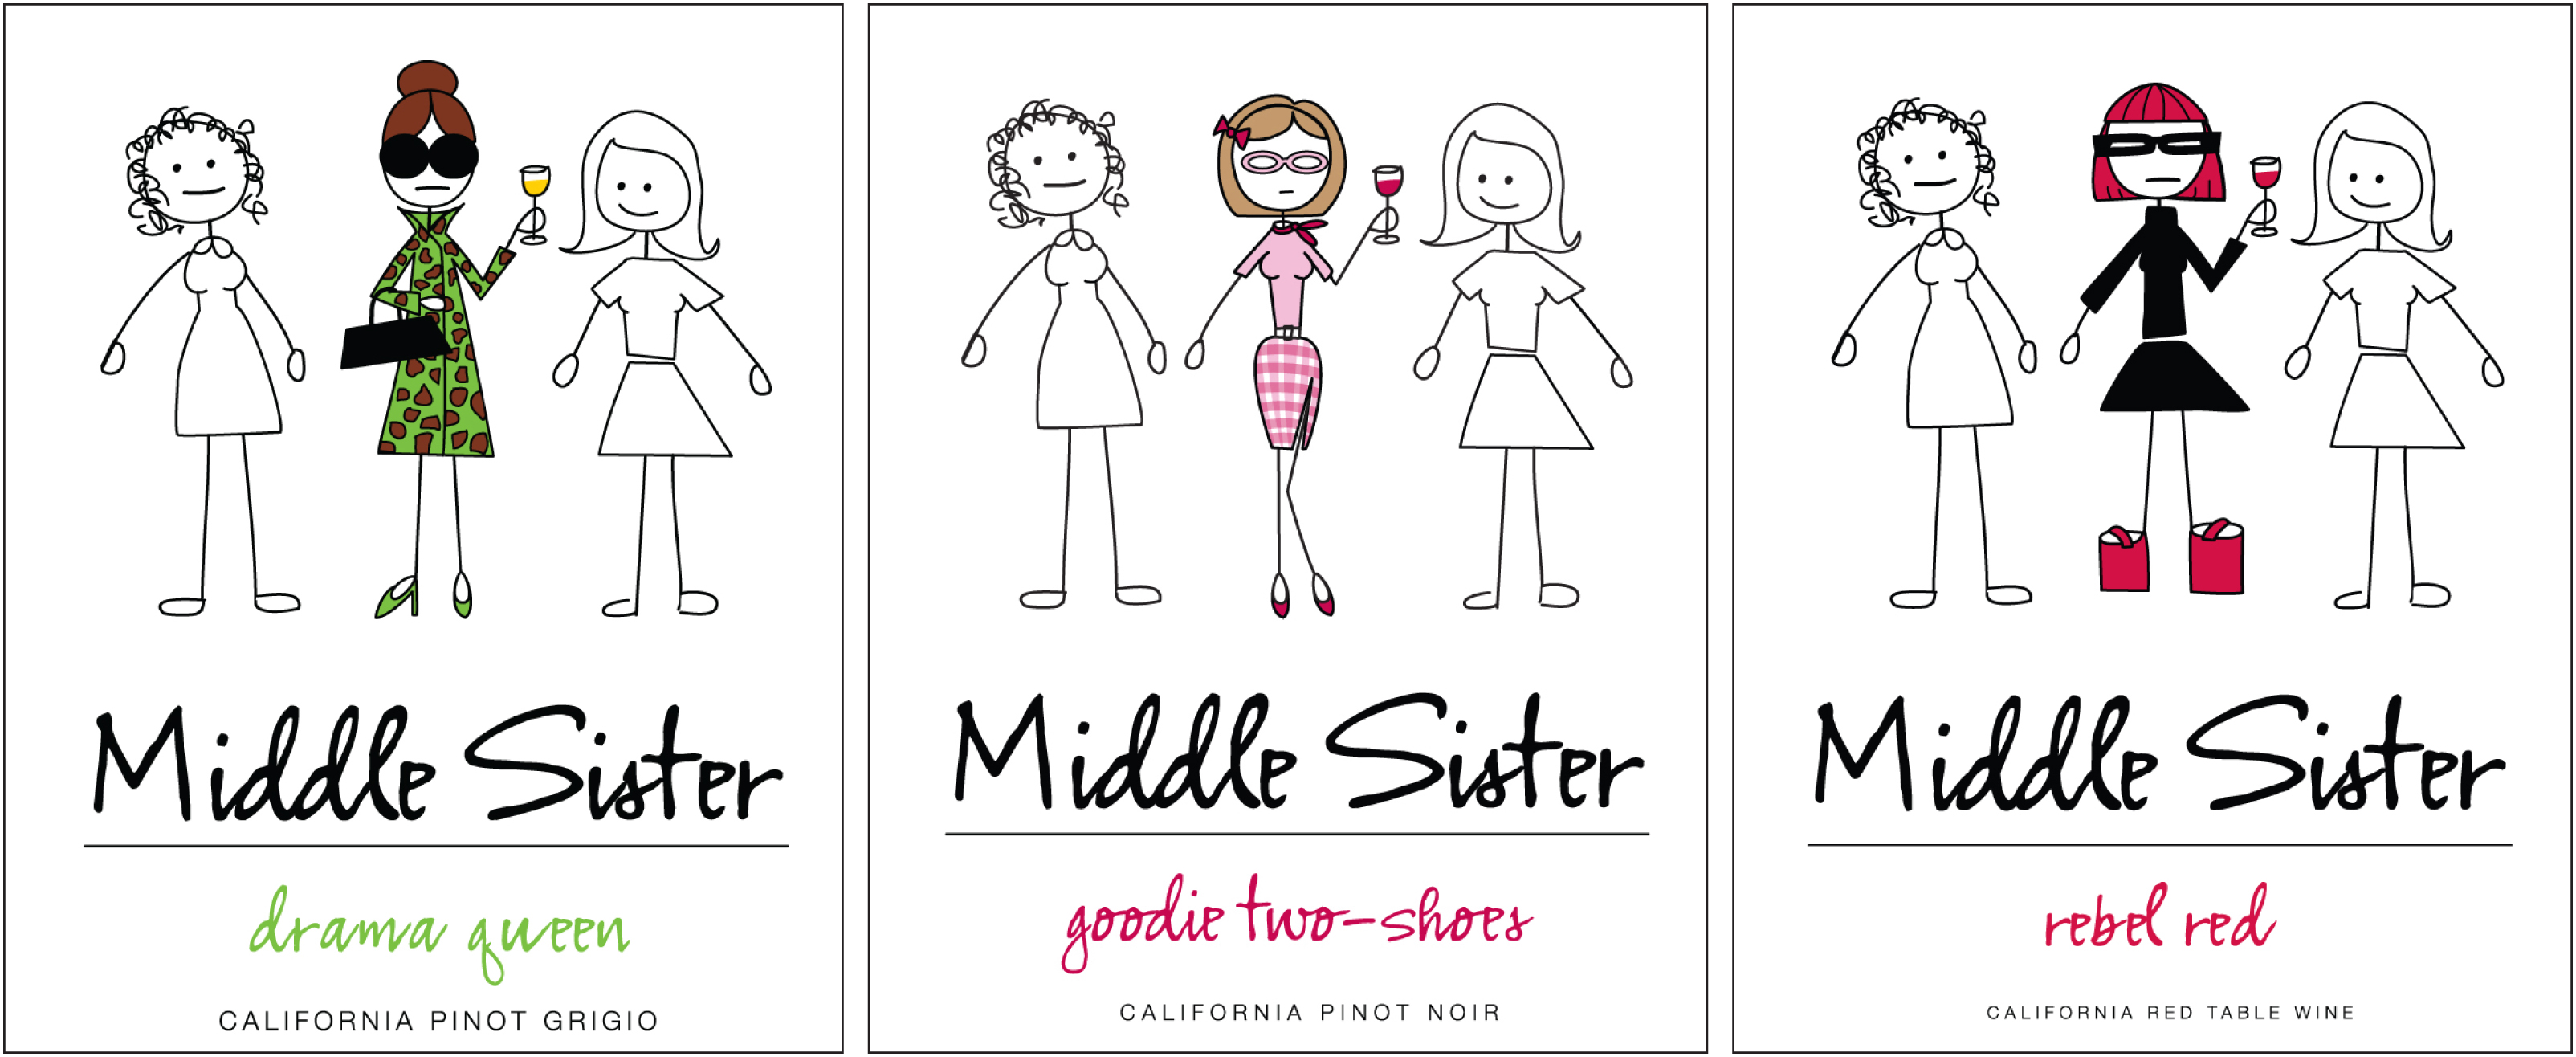 Middle_Sister_02